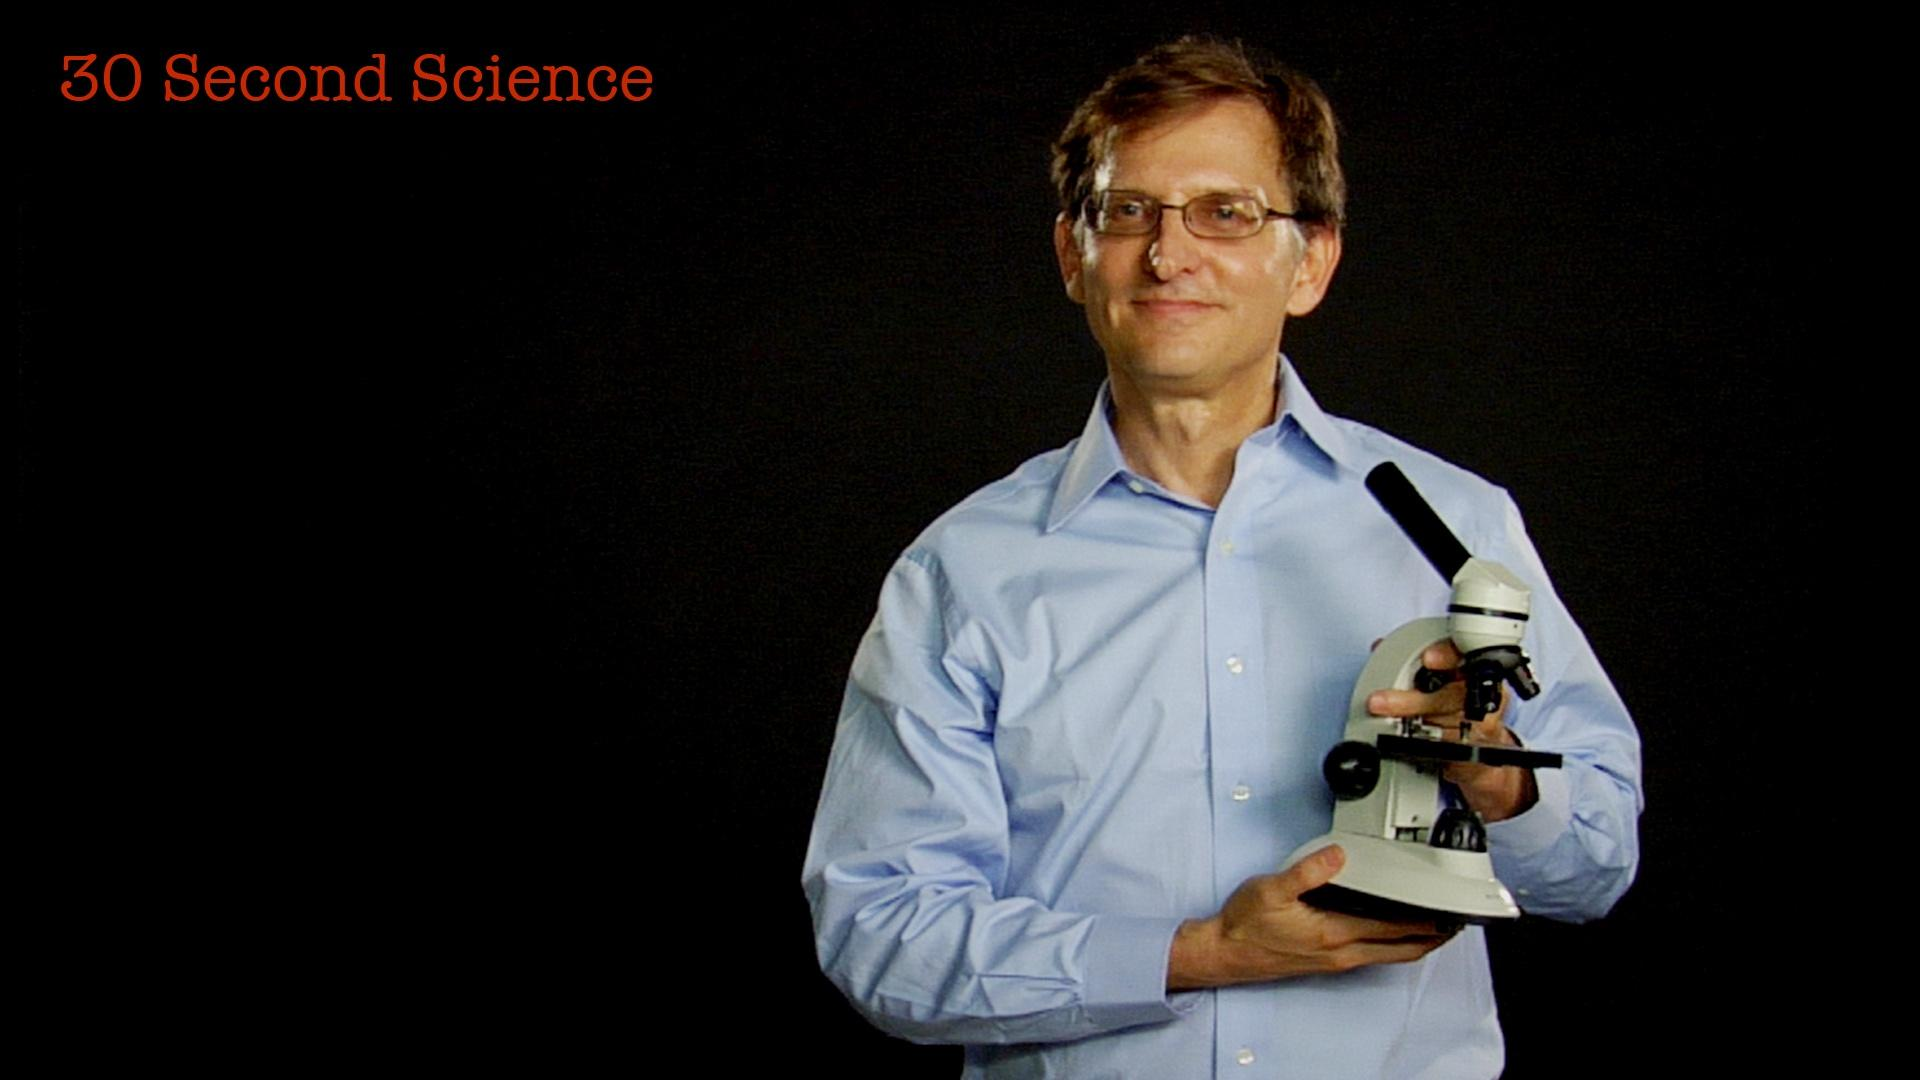 Secret Life of Scientists and Engineers: 30 Second Science: Ian Lipkin